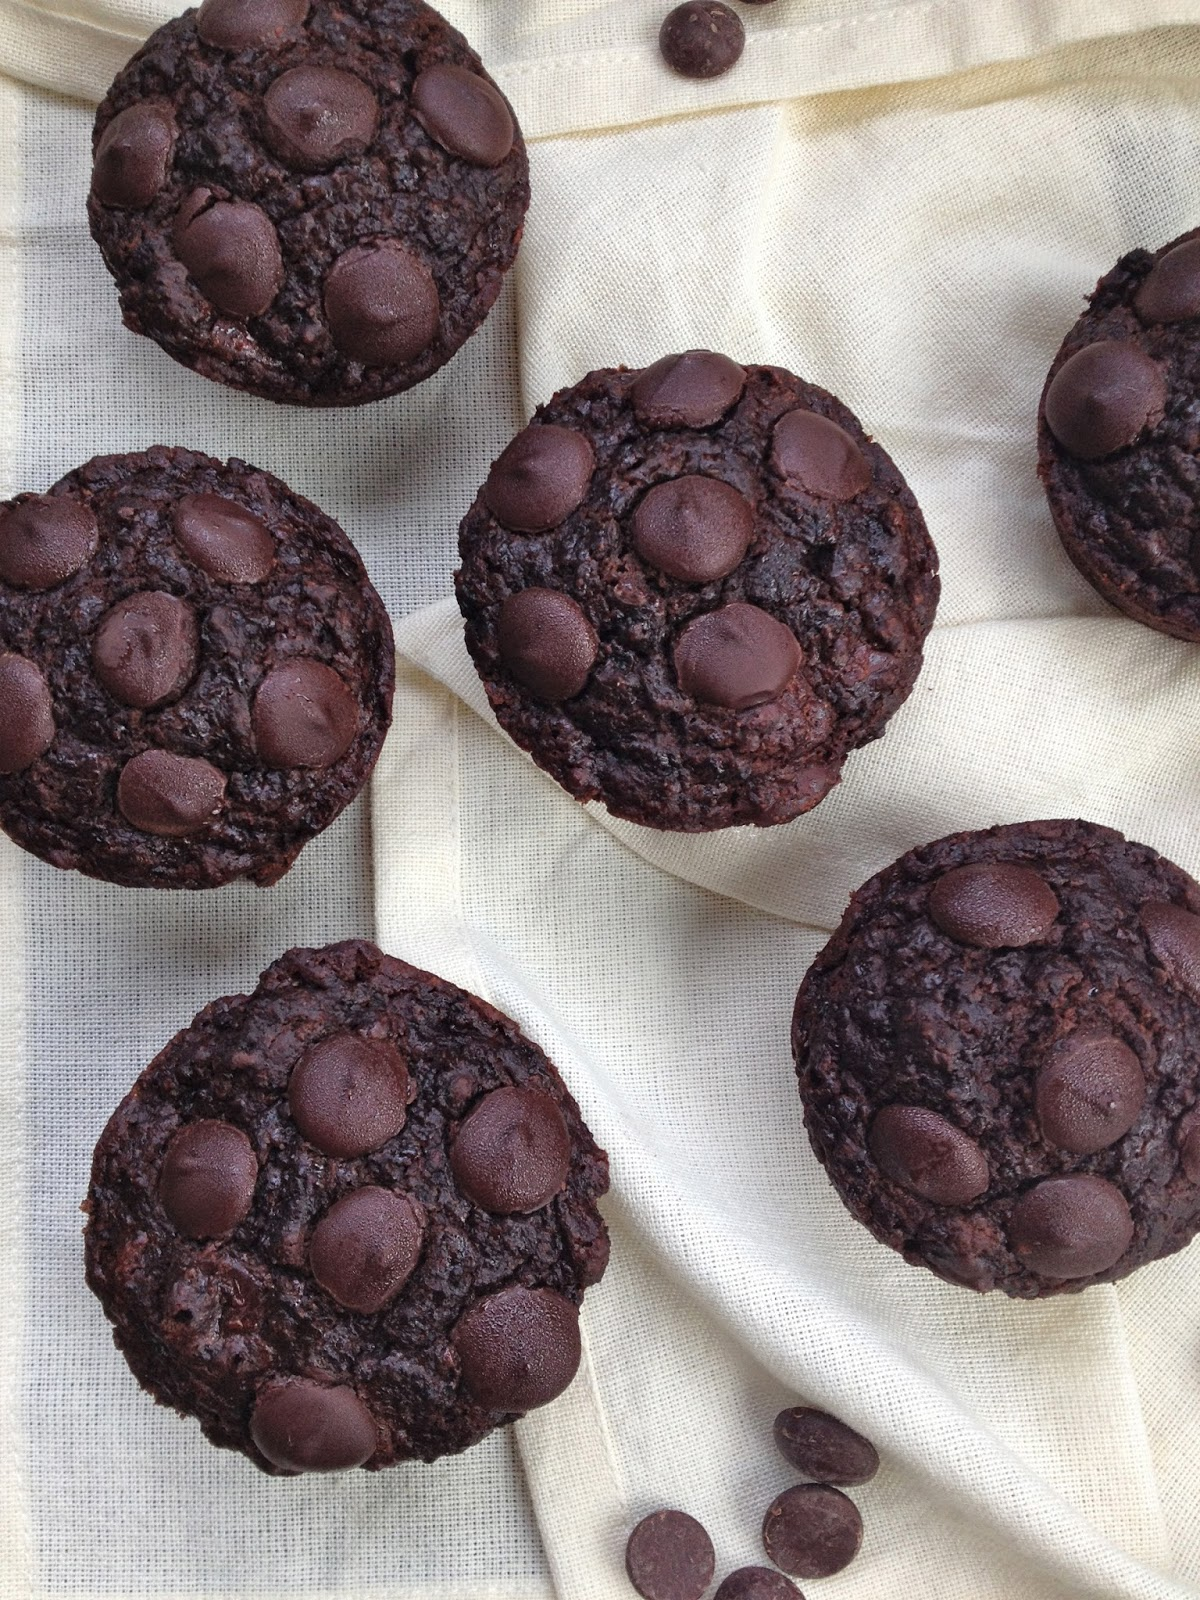 Can U Substitute Chocolate Chips For Cocoa Powder